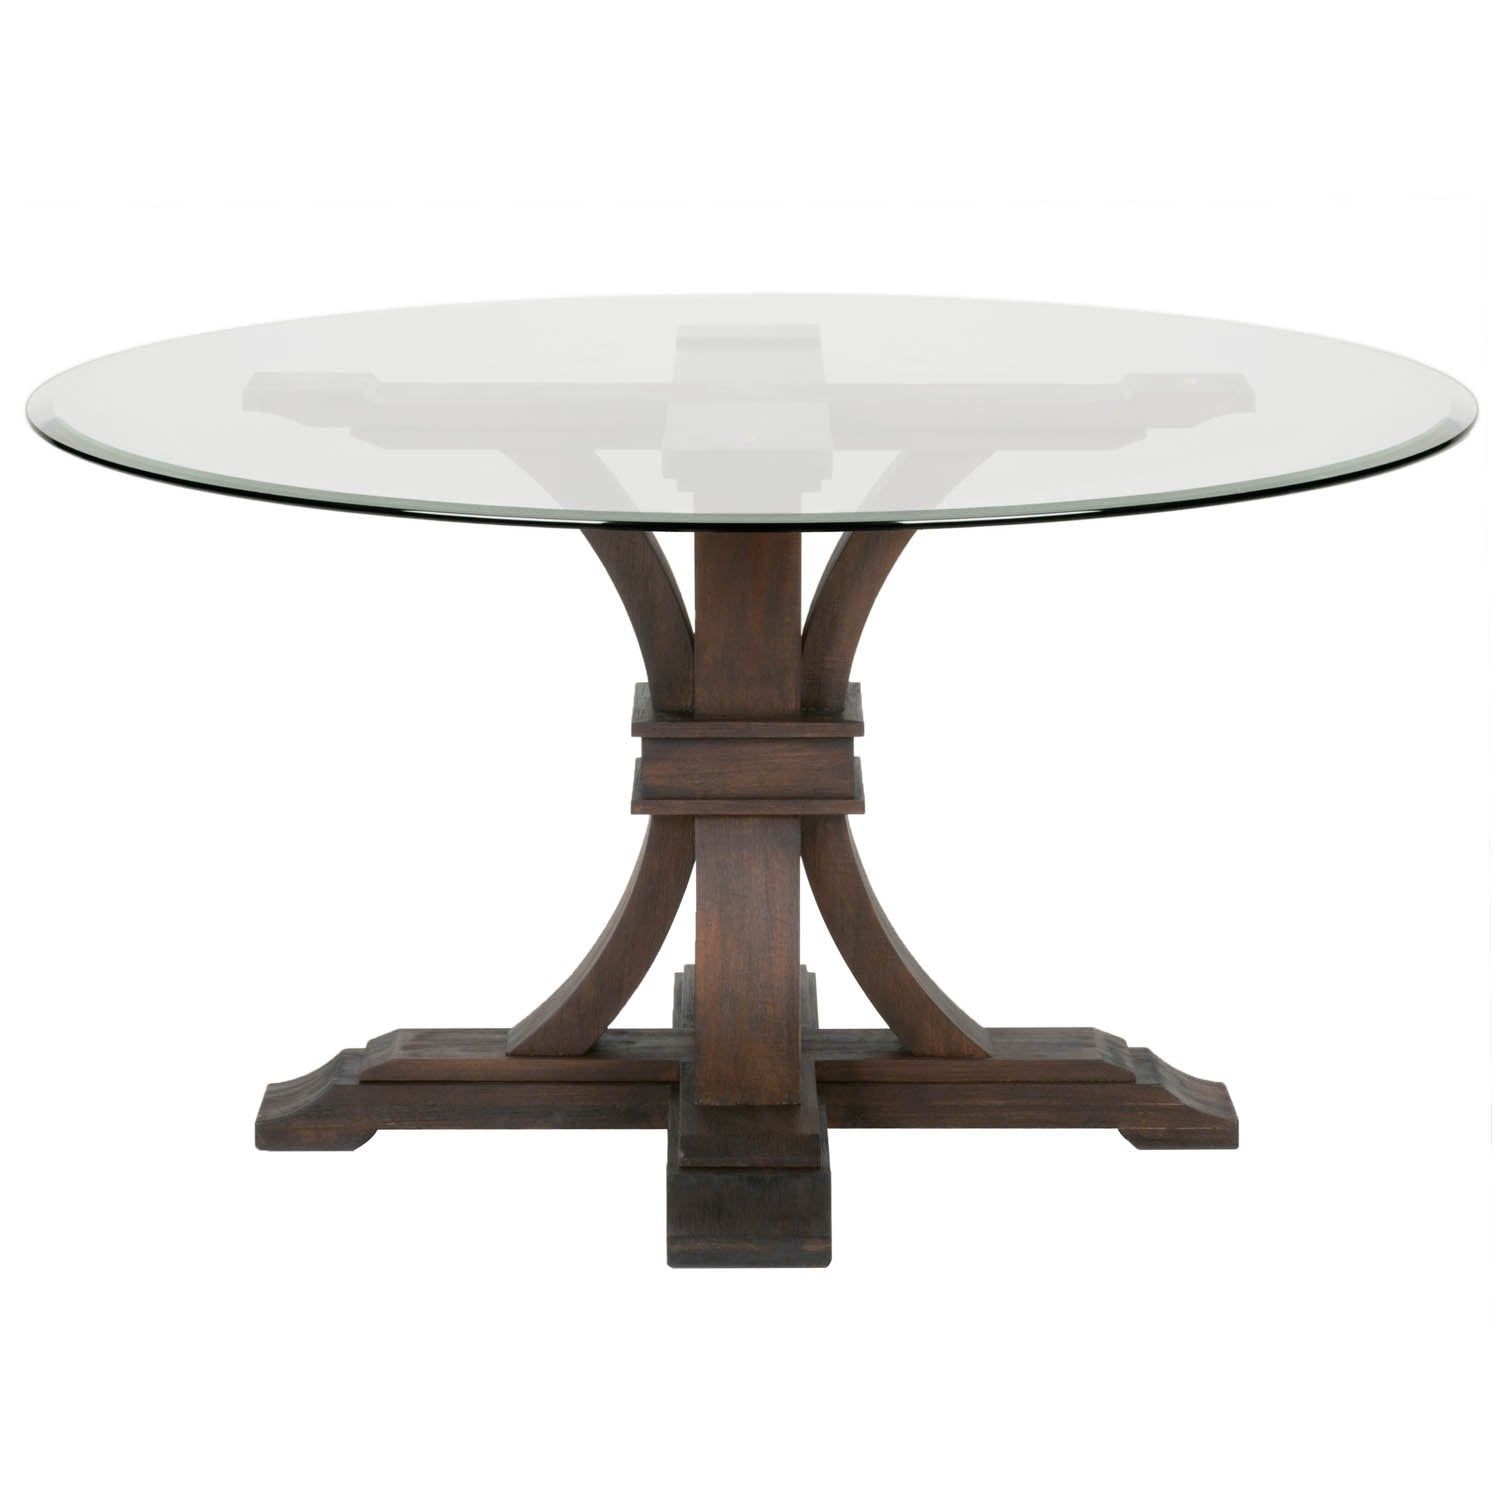 "Devon 54"" Round Glass Dining Table in Rustic Java"